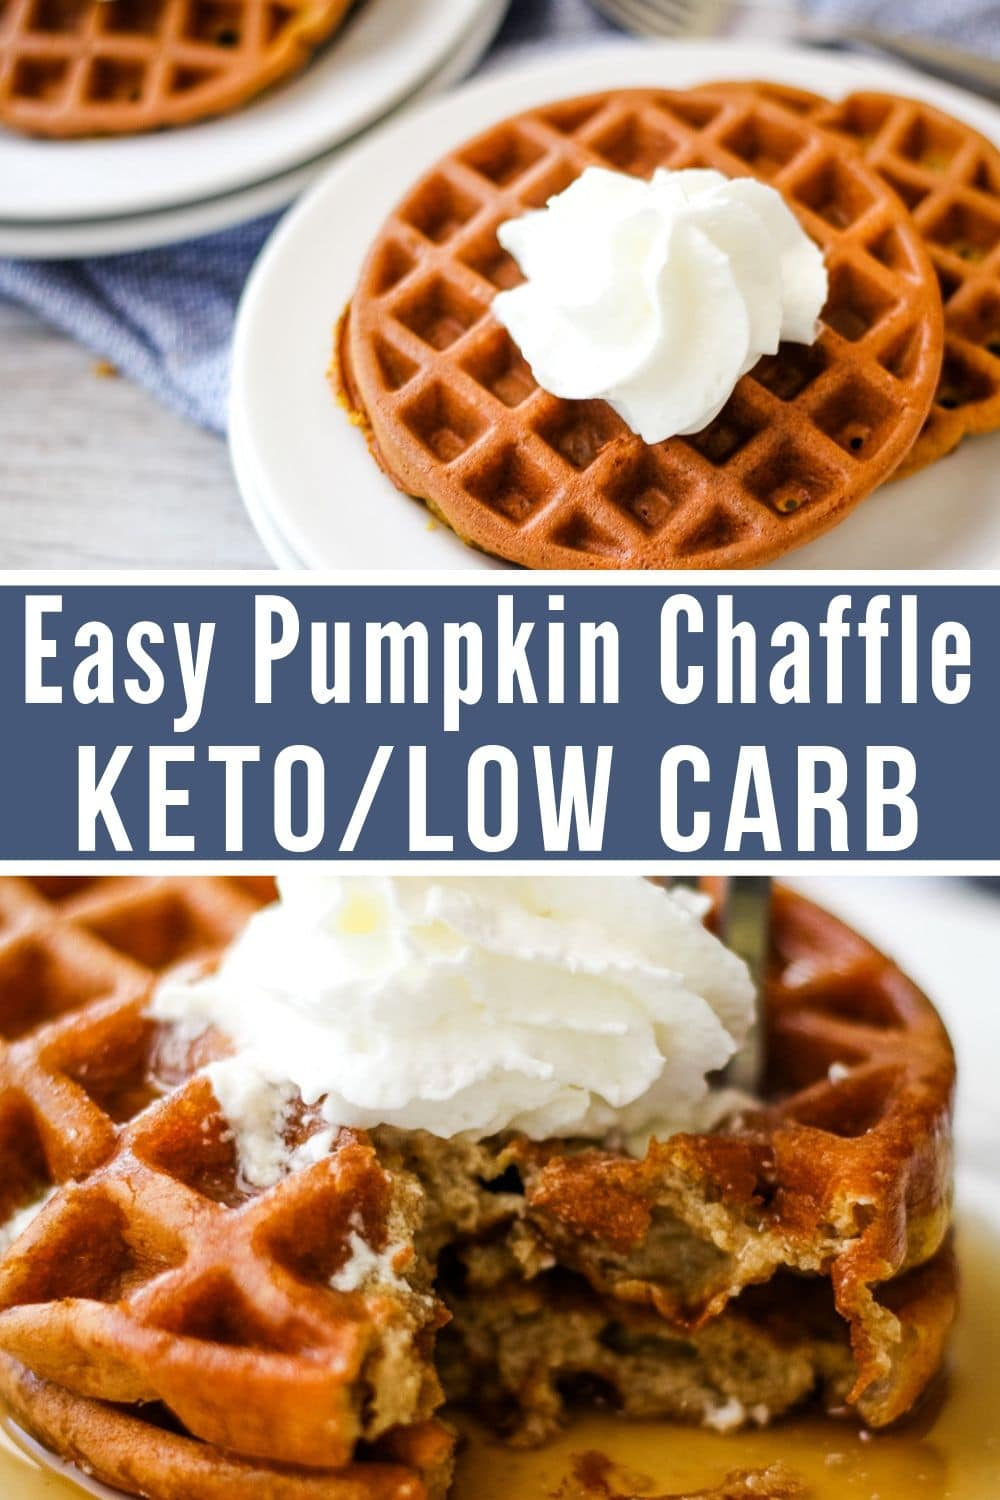 pumpkin Chaffle plated collage